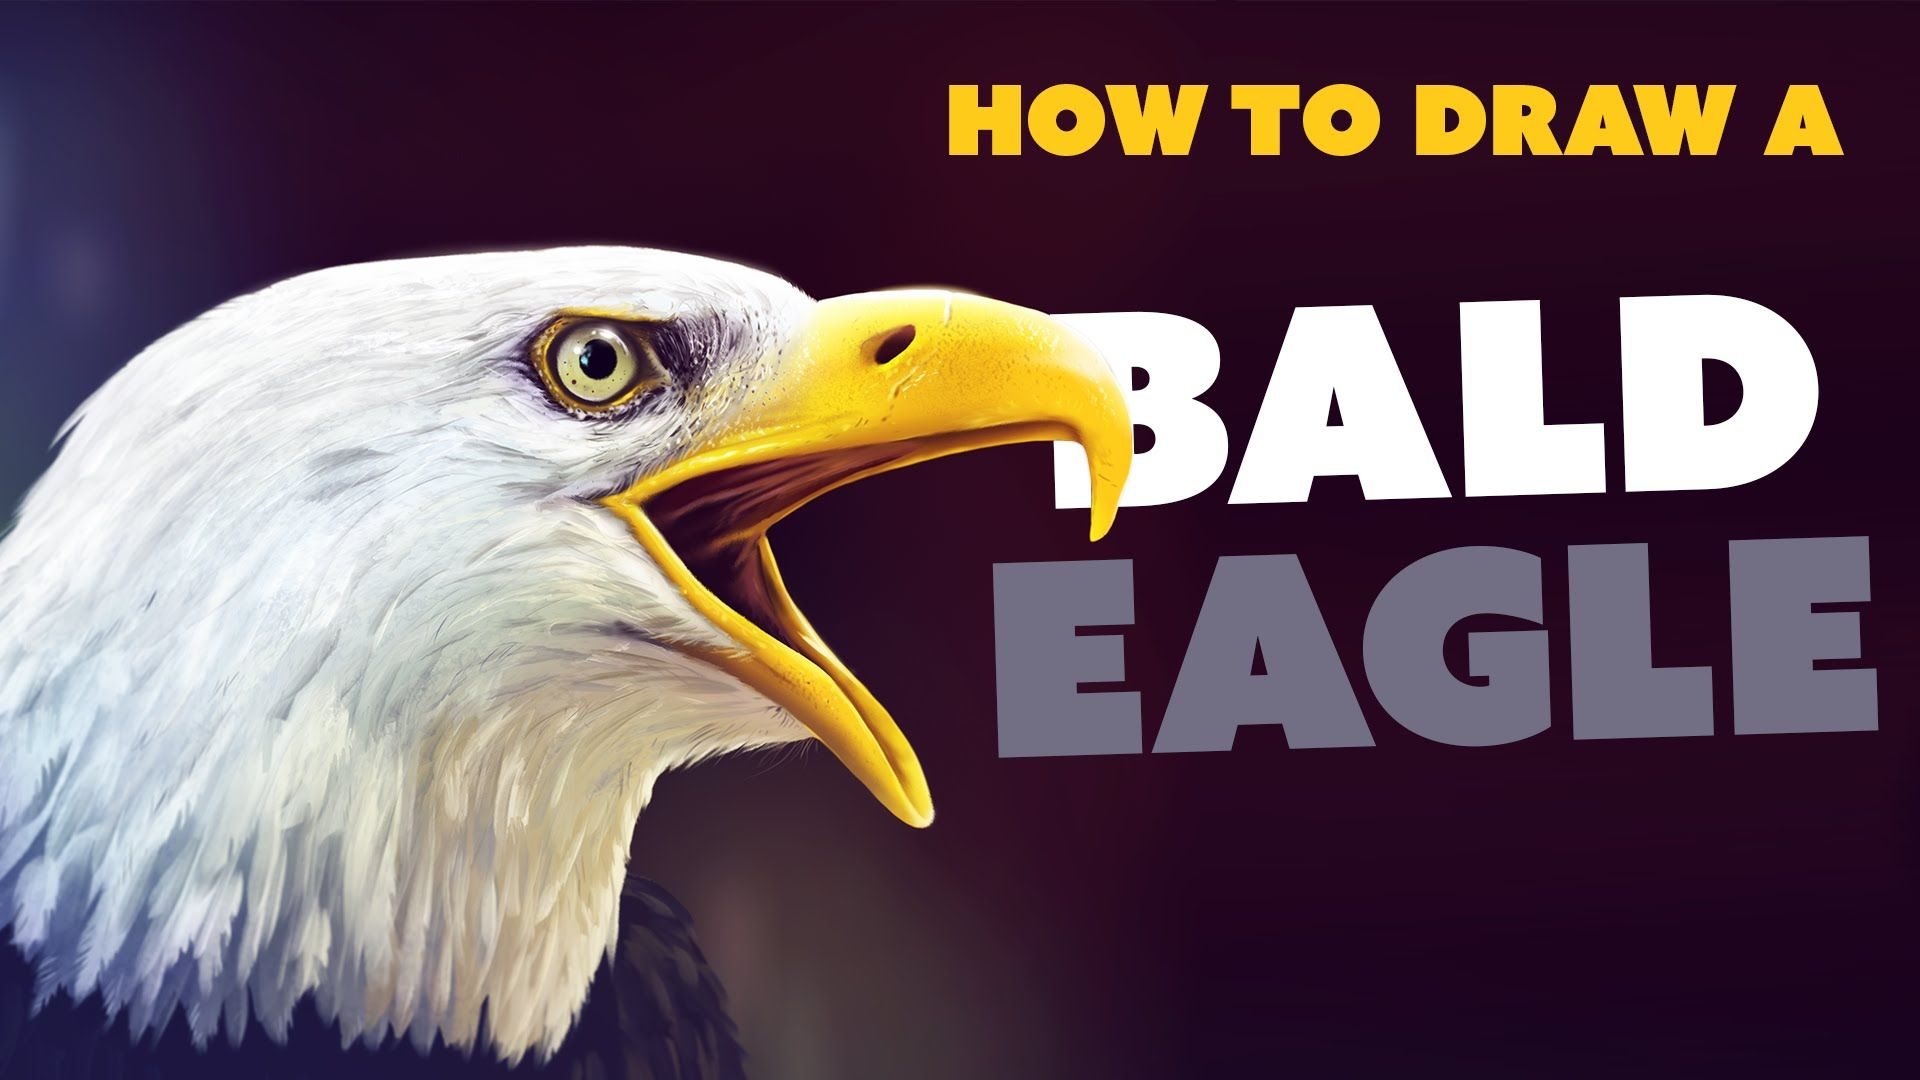 In this tutorial, I'll teach you how to draw a realistic bald eagle using Corel Painter, Photoshop CC and a Wacom tablet. Follow along with me step-by-step a...